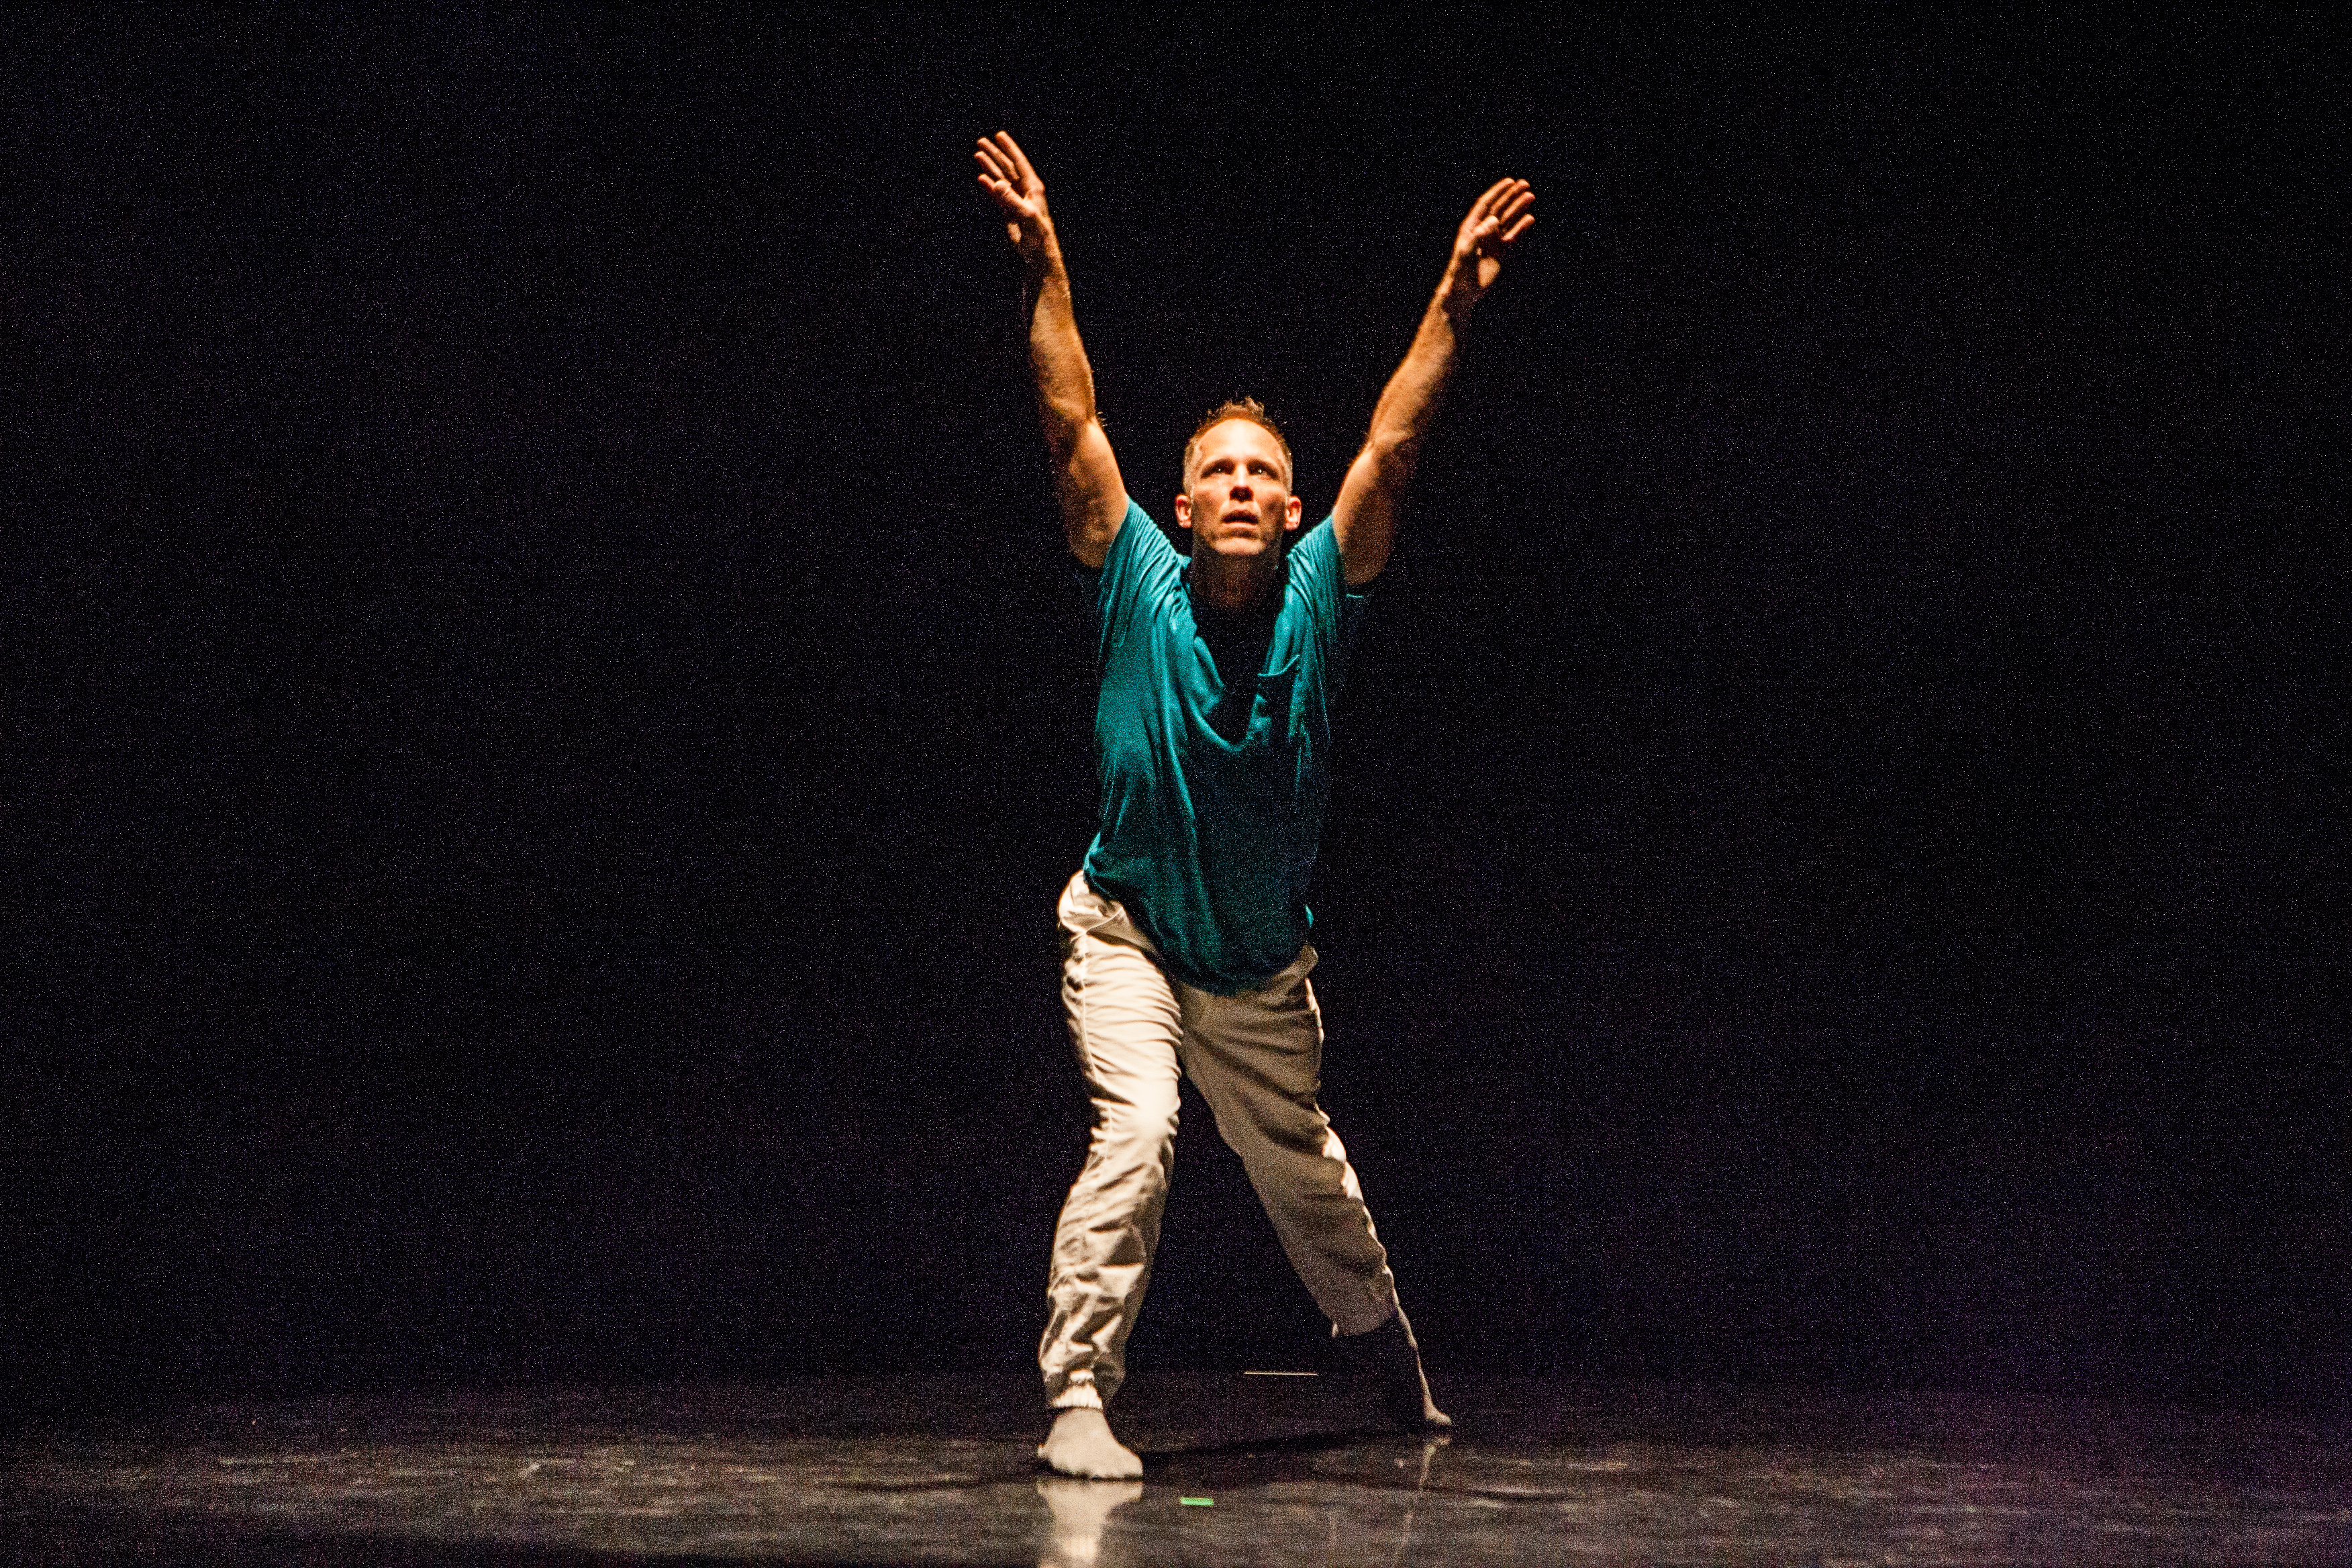 Christian Burns on stage at the Ziru SV Festival, looking up with arms extended up in a V-shape